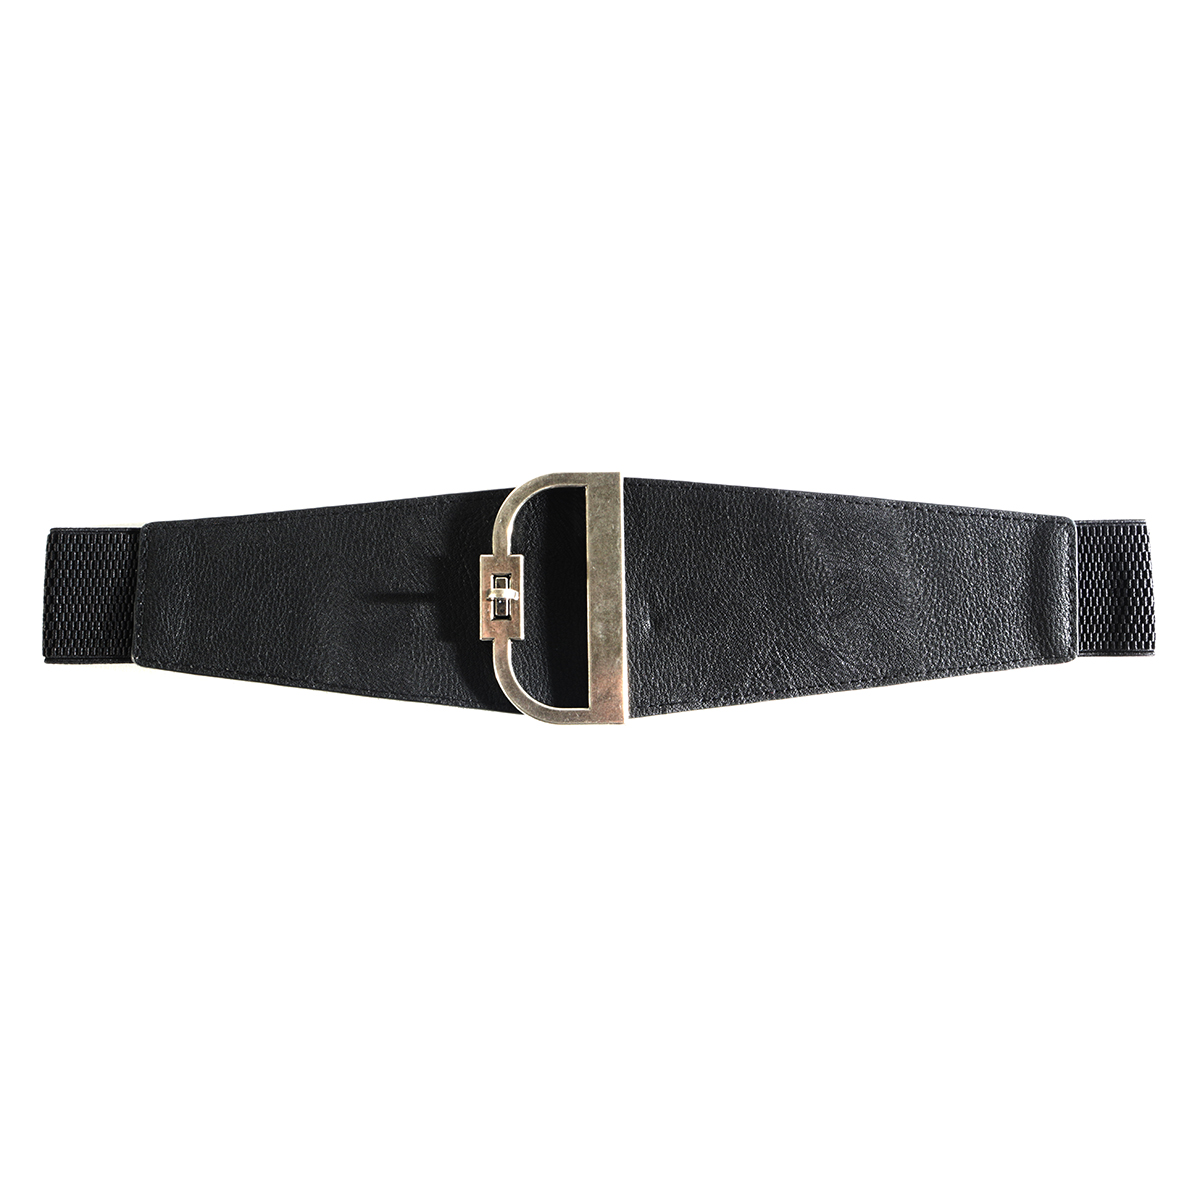 "BLK 34"" D BUCKLE BELT"